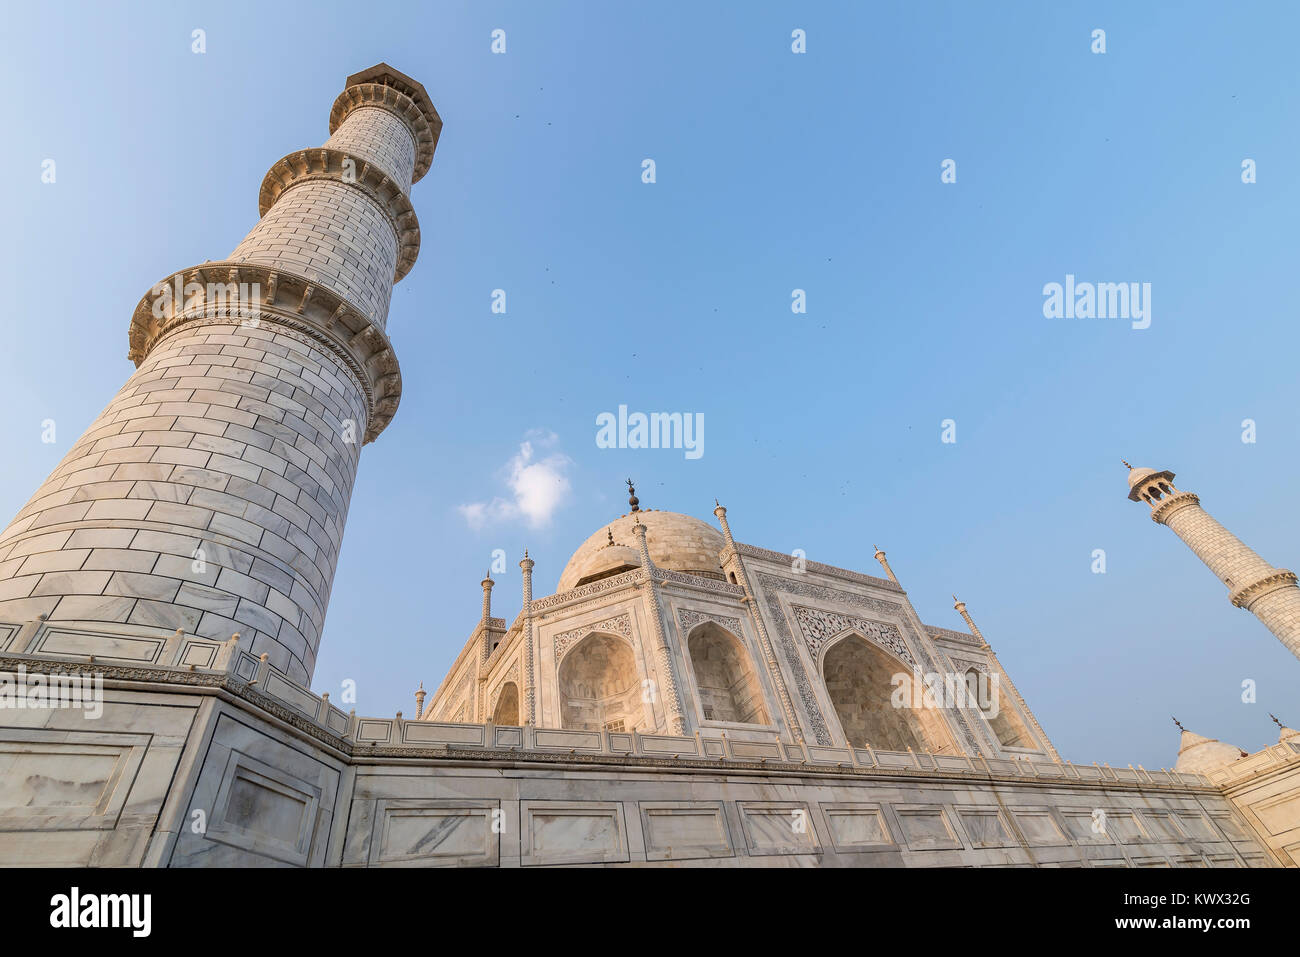 Vue grand angle du Taj Mahal d'Agra, ci-dessous, de l'Uttar Pradesh, Inde Photo Stock